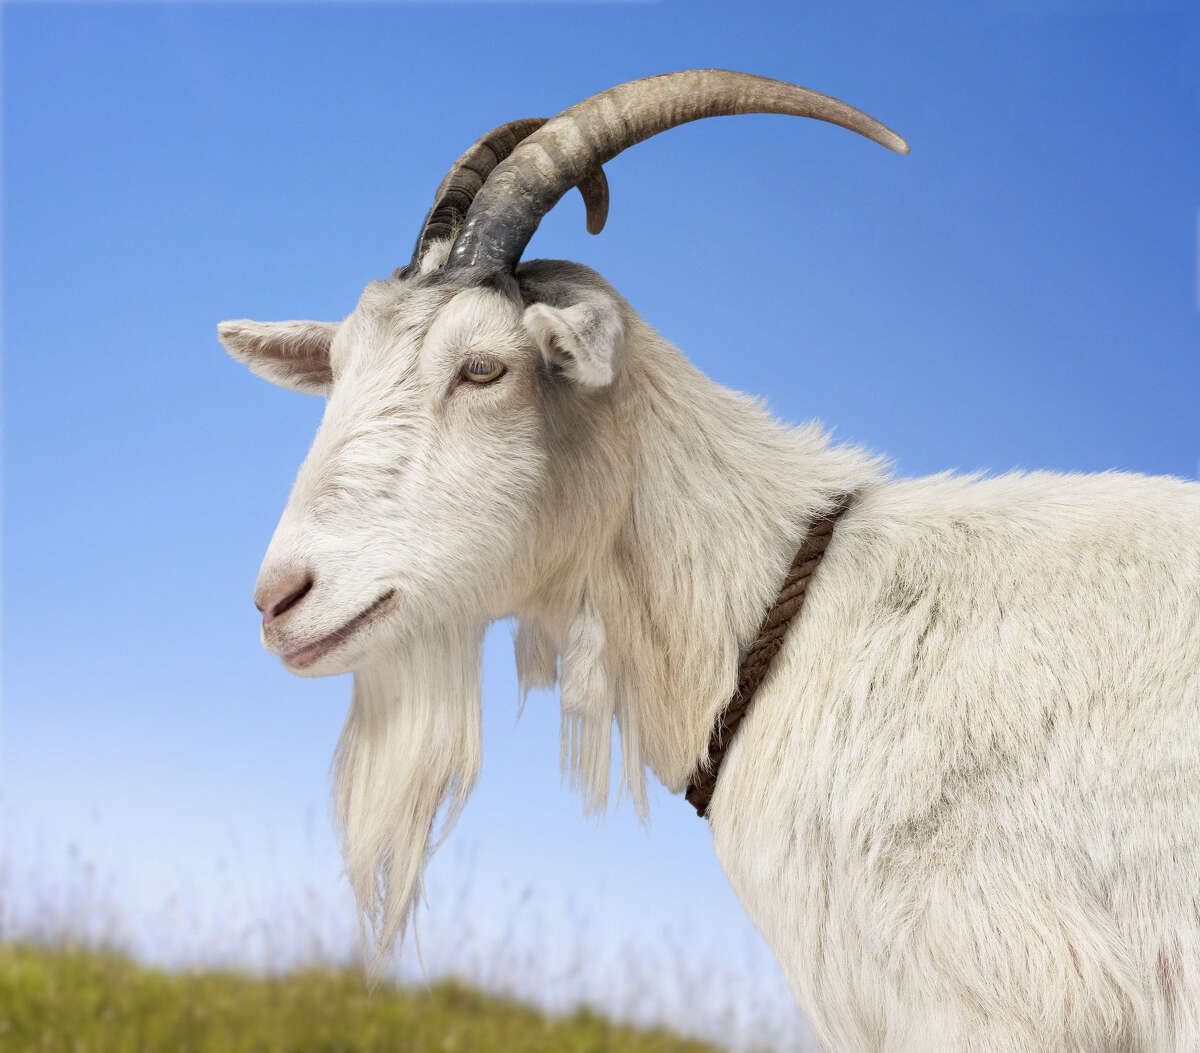 A Florida senate candidate from the state's Libertarian Party has denied accusations from the former party chair that he's dismembered goats as part of his religion. Click to see the gallery for the weirdest, craziest stories out of the Sunshine State.